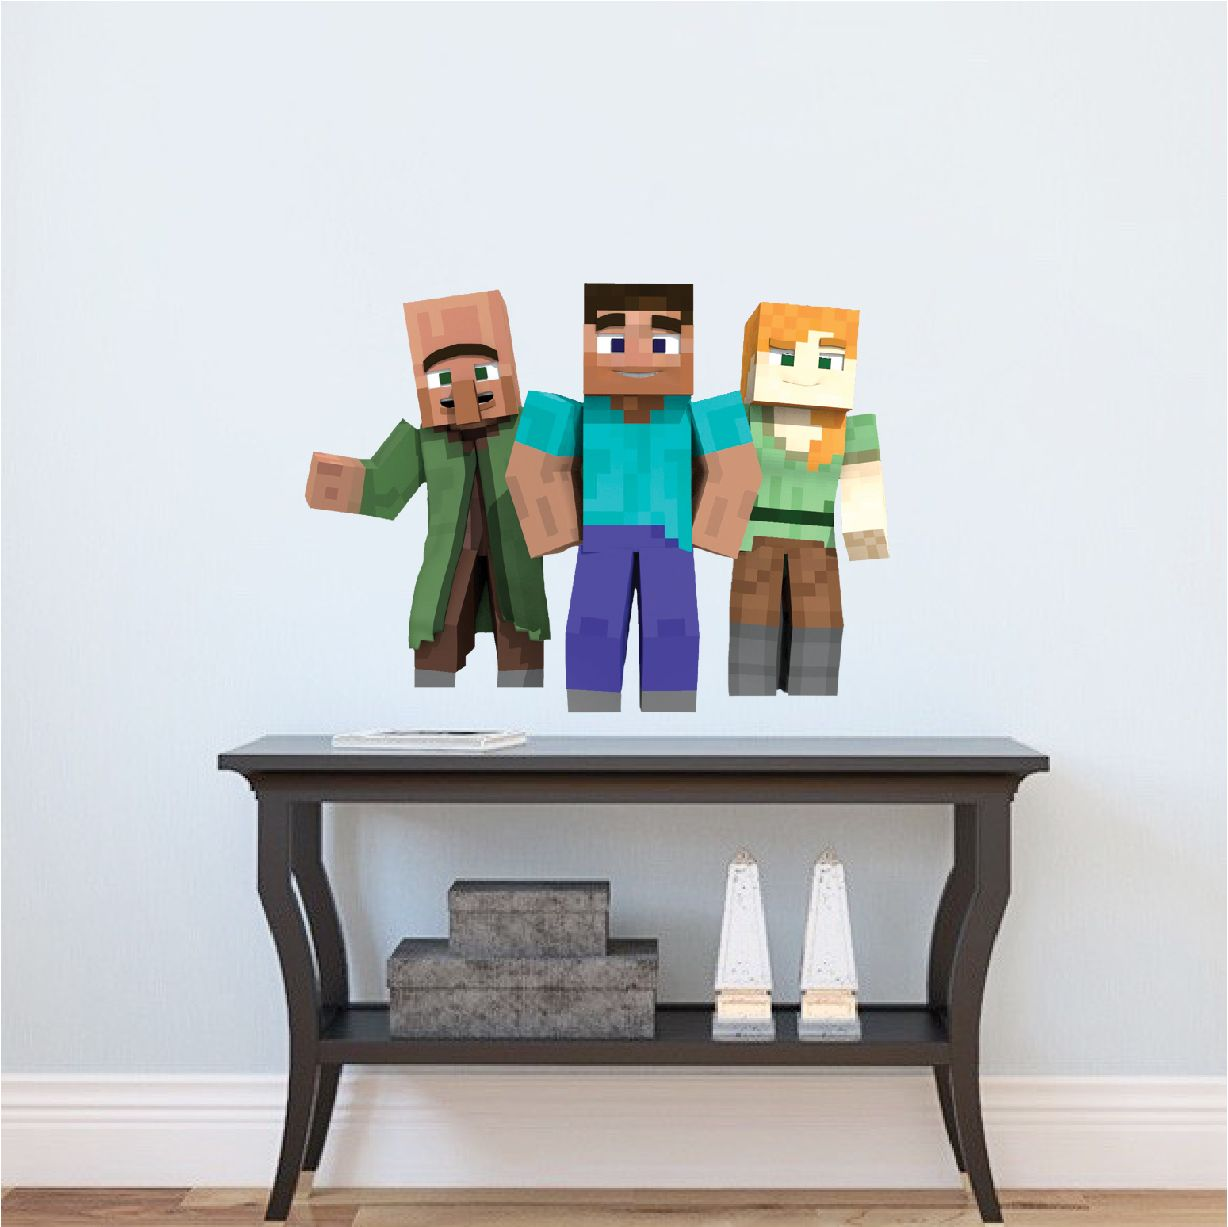 Minecraft steve and alex bedroom wall stickers minecraft design minecraft steve and alex bedroom wall stickers minecraft design decals video game wall decal amipublicfo Choice Image